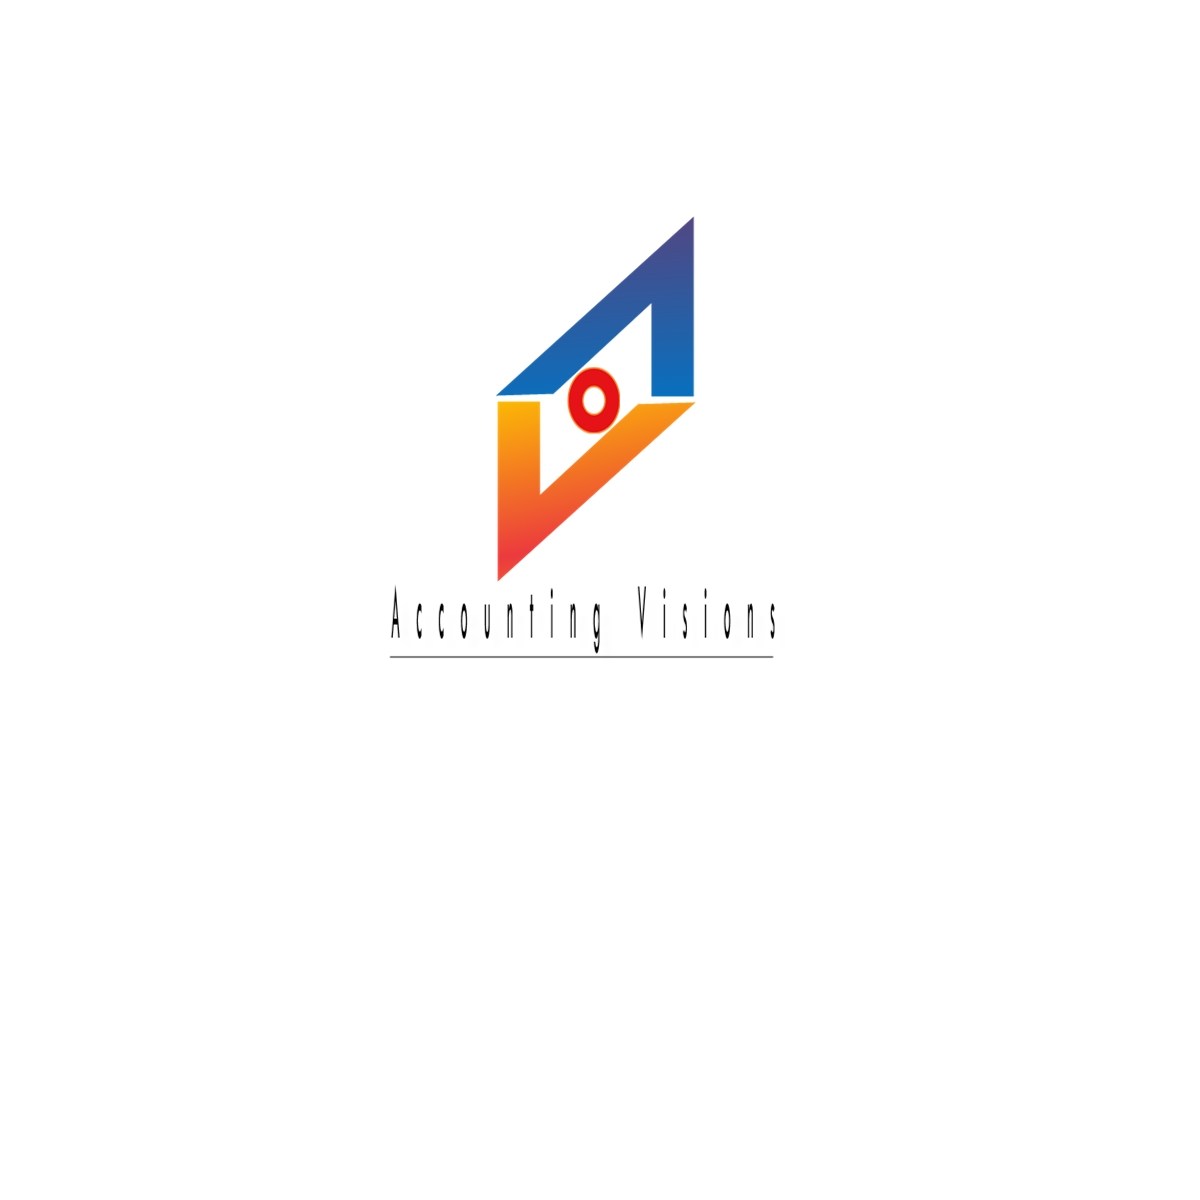 Logo Design by Joseph calunsag Cagaanan - Entry No. 26 in the Logo Design Contest Accounting Visions.